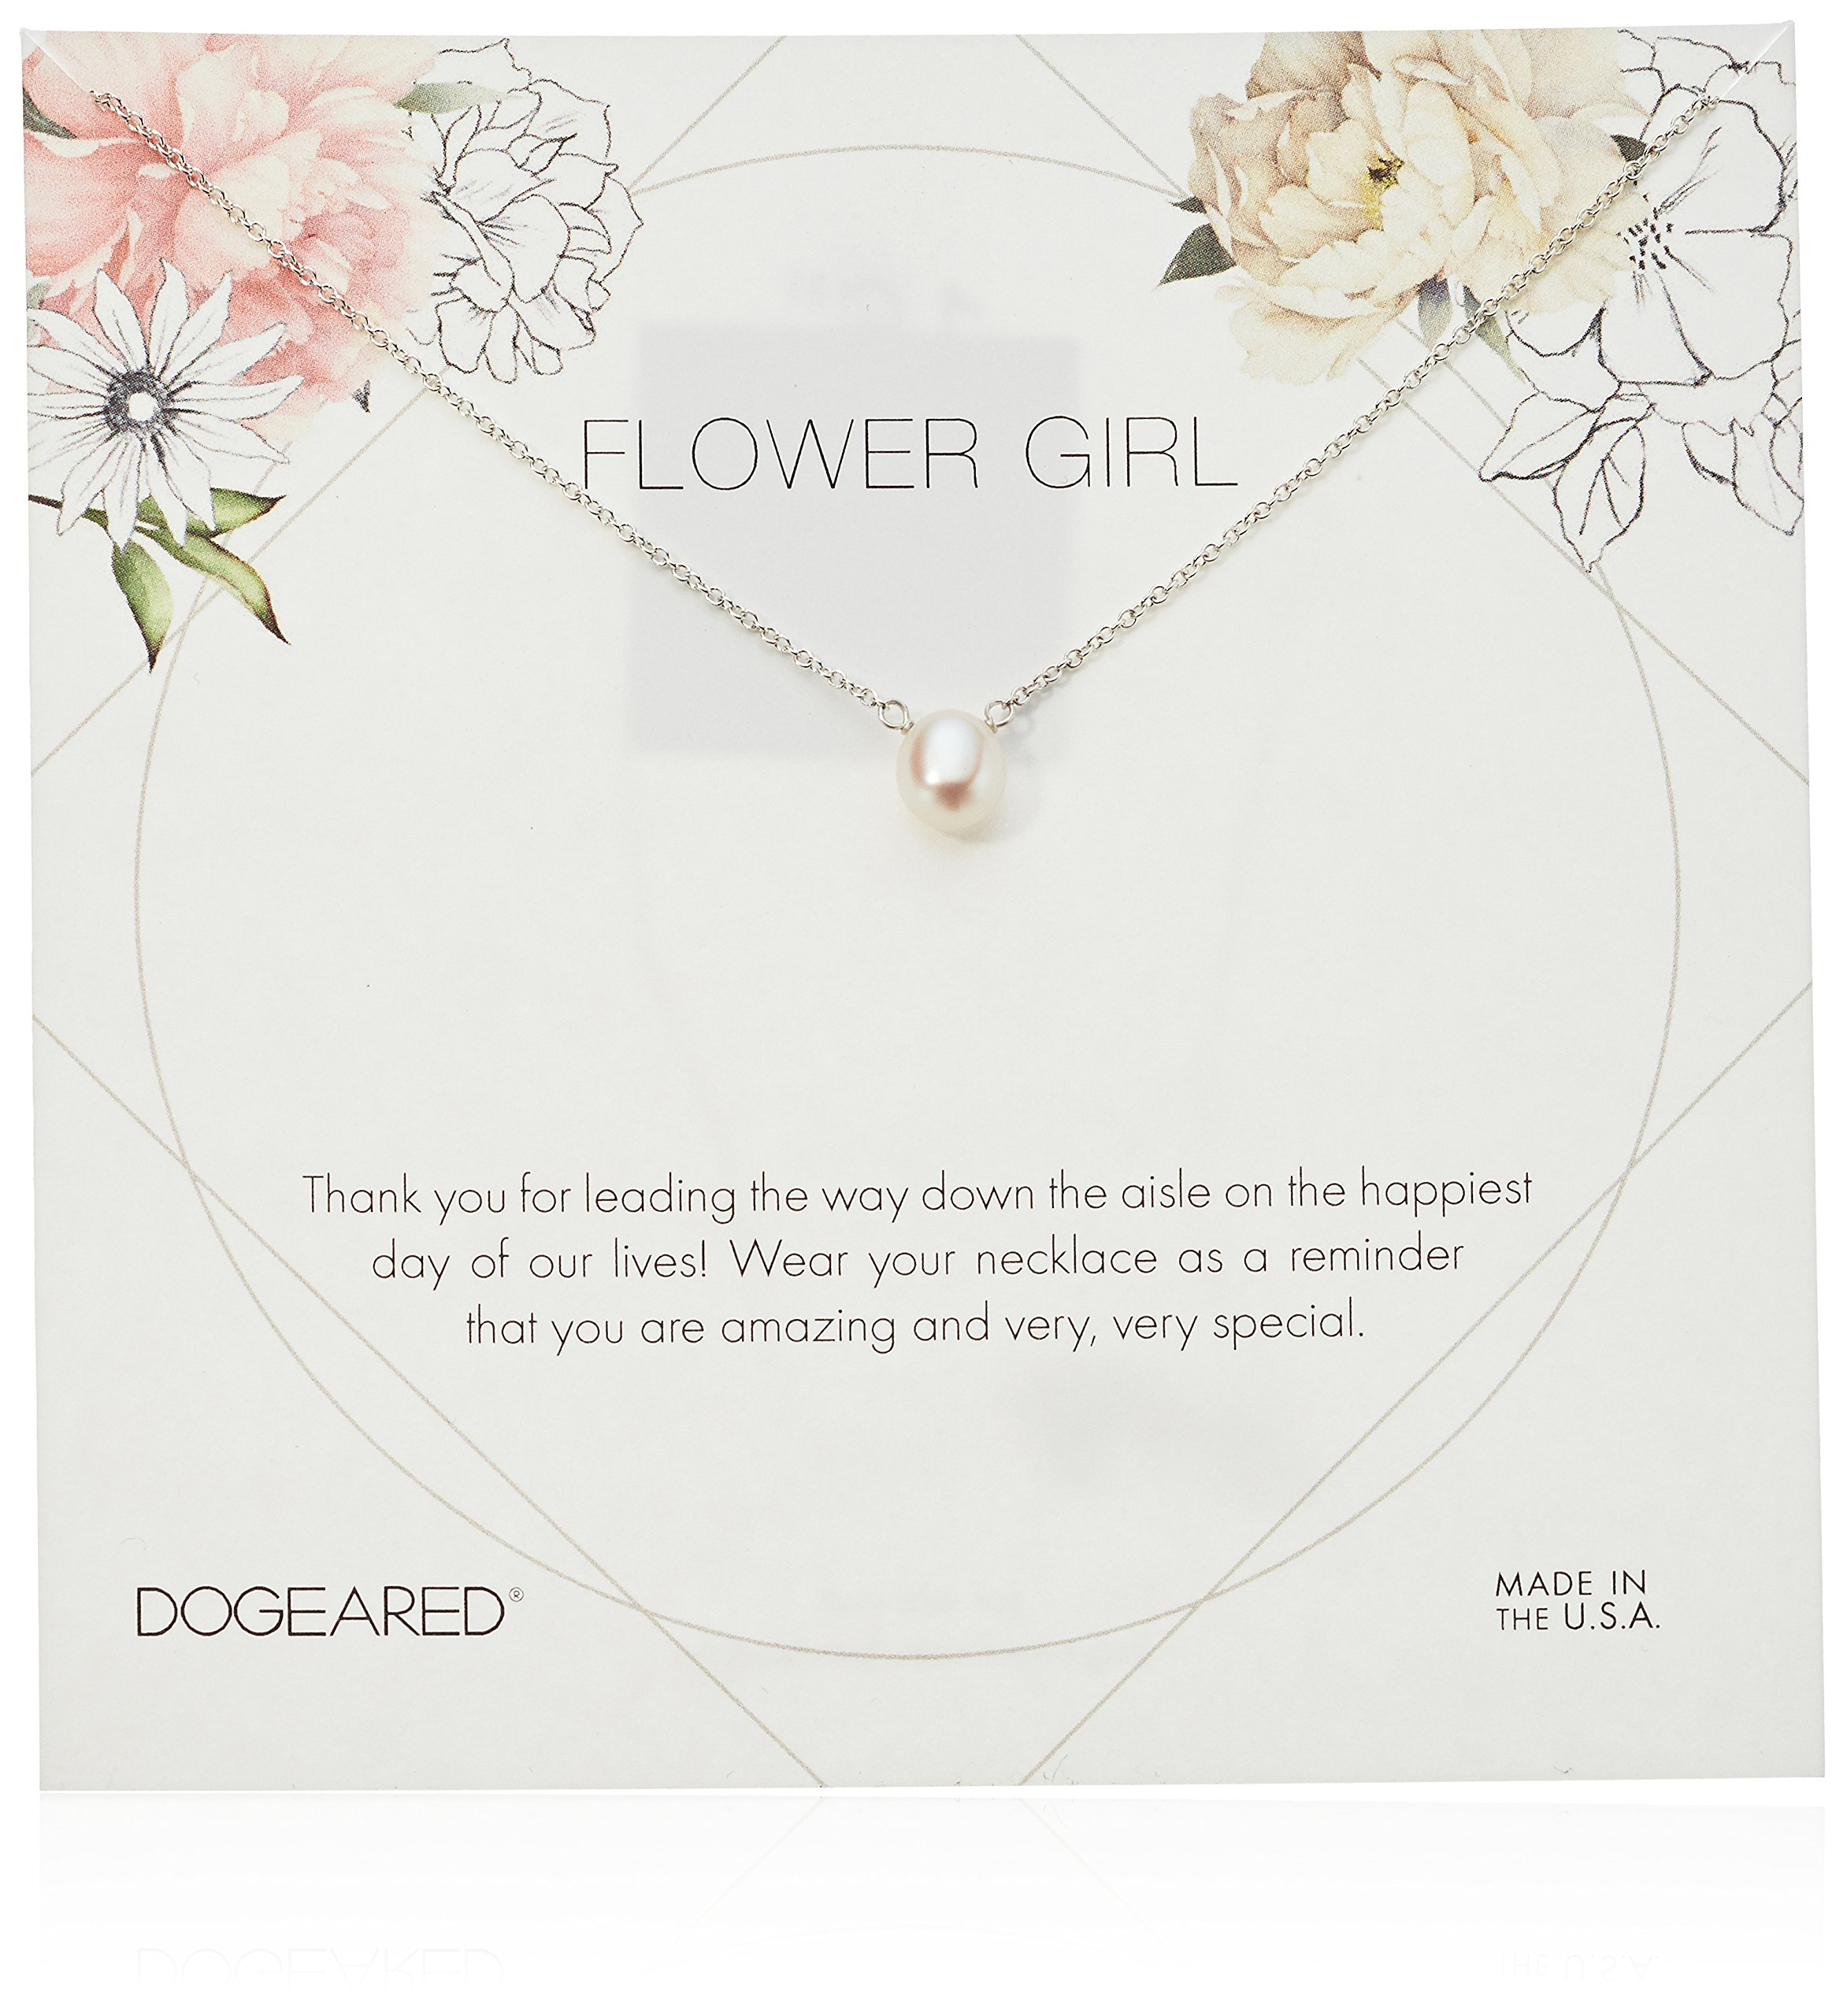 Dogeared Flower Girl Flower Card Small ButtonWhite Pearl Chain Neckalce, Sterling Silver, 16'' + 2'' Extension